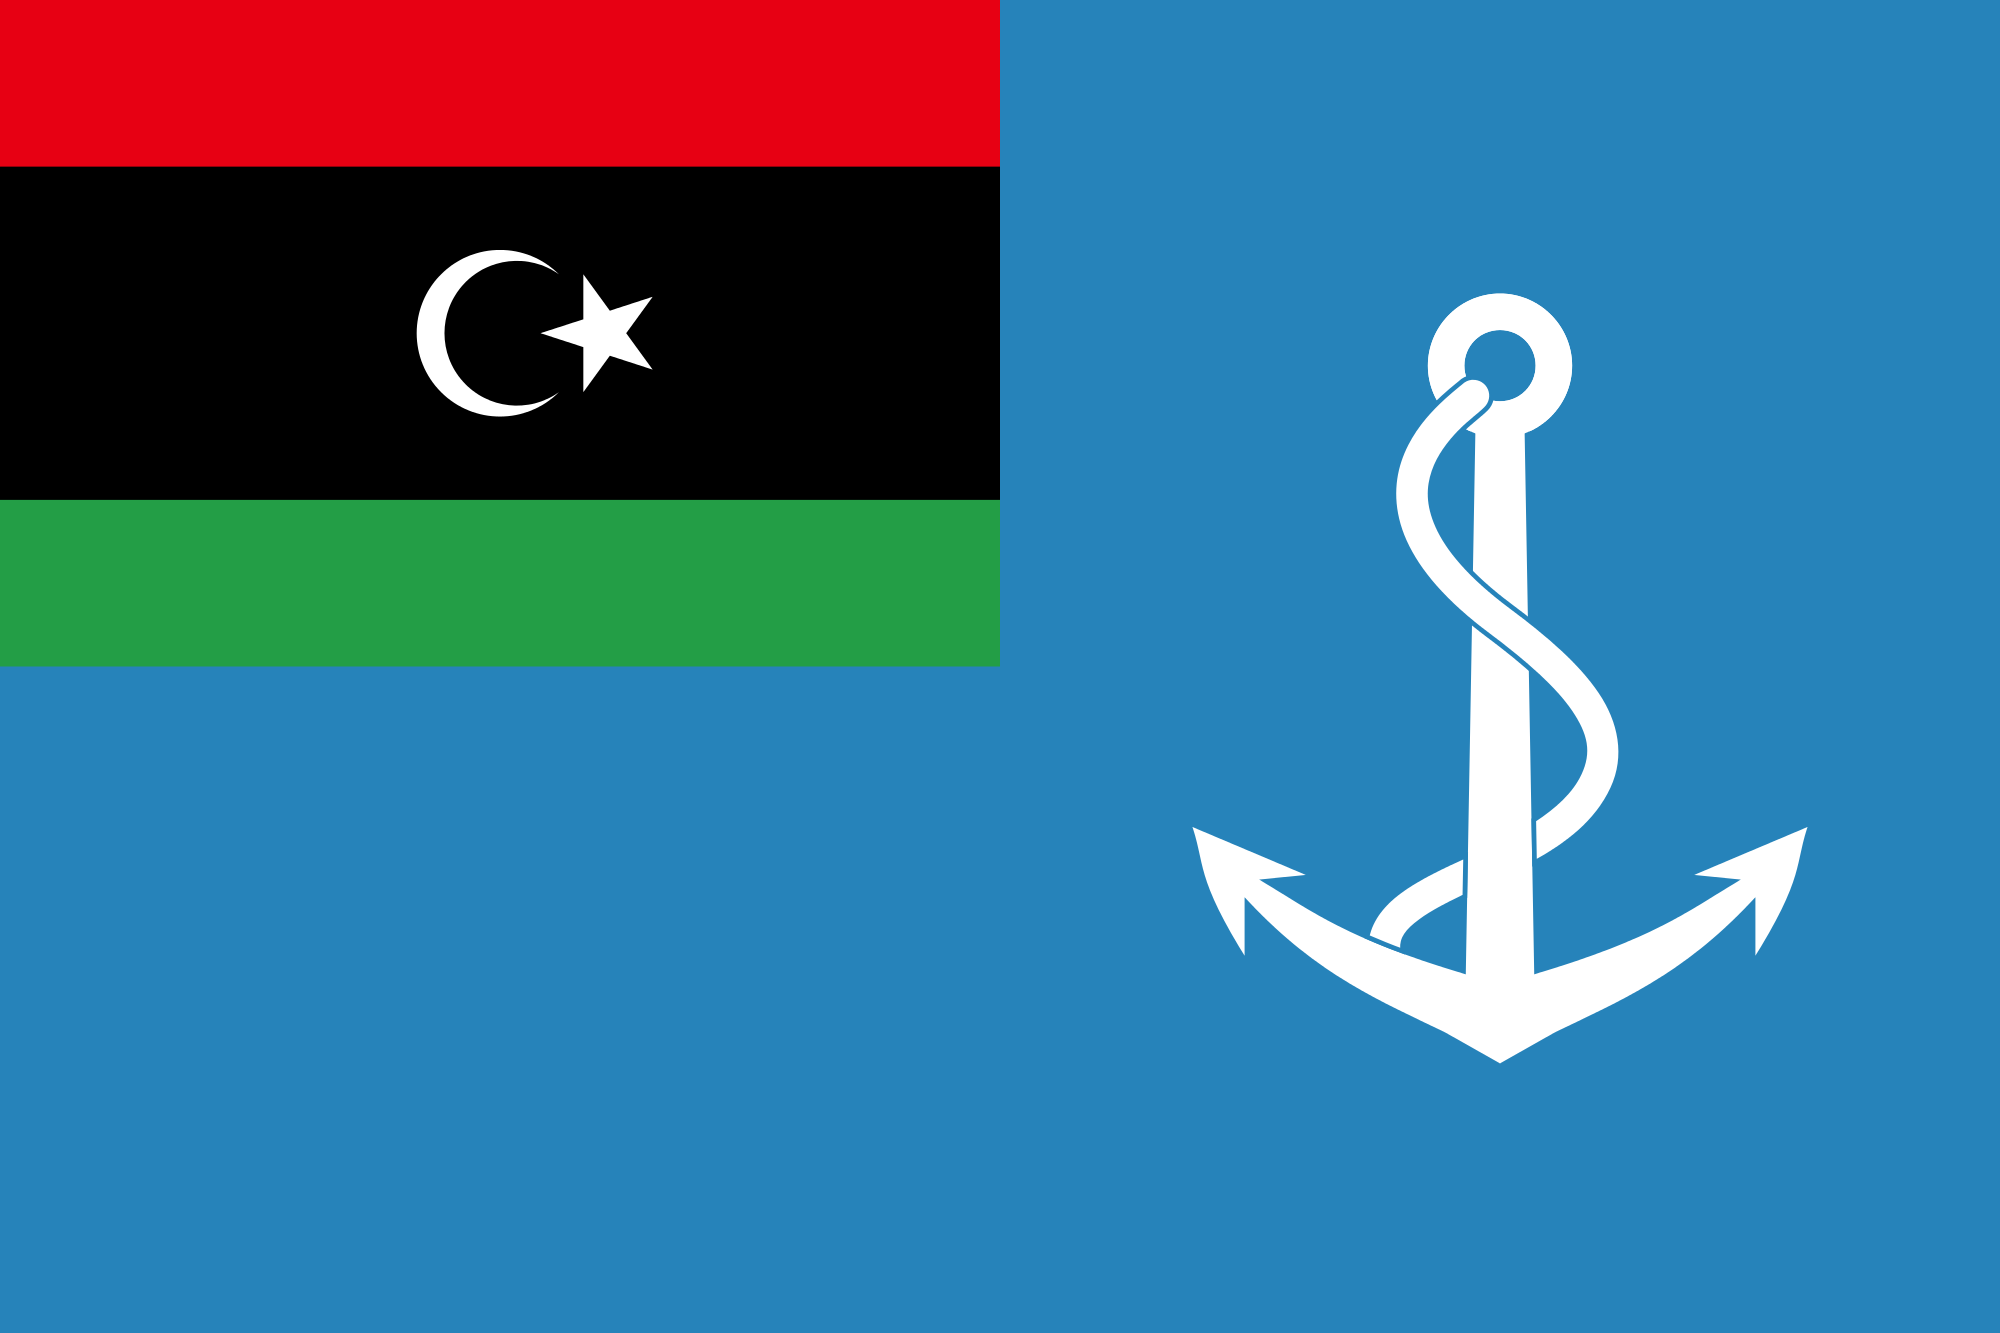 Flag of Libya (Naval Ensign)